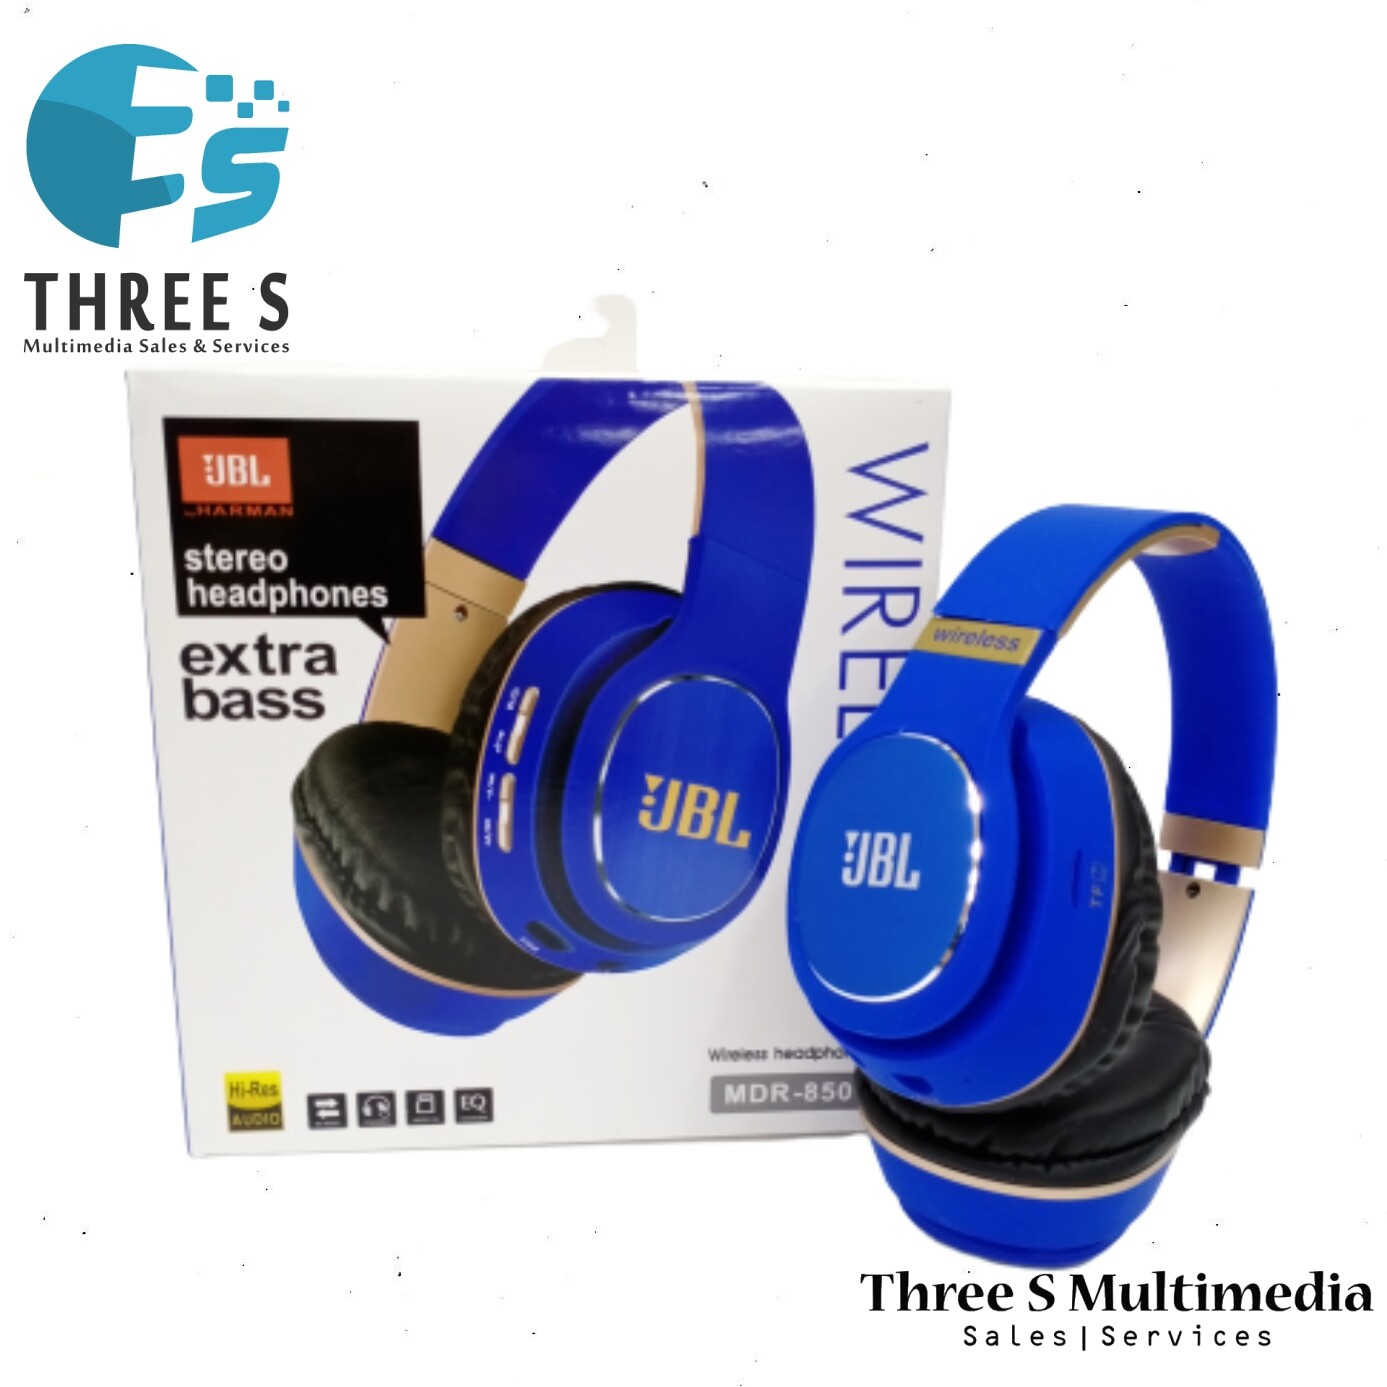 Ready Stock- JBL STEREO HEADPHONE MDR-850 EXTRA BASS